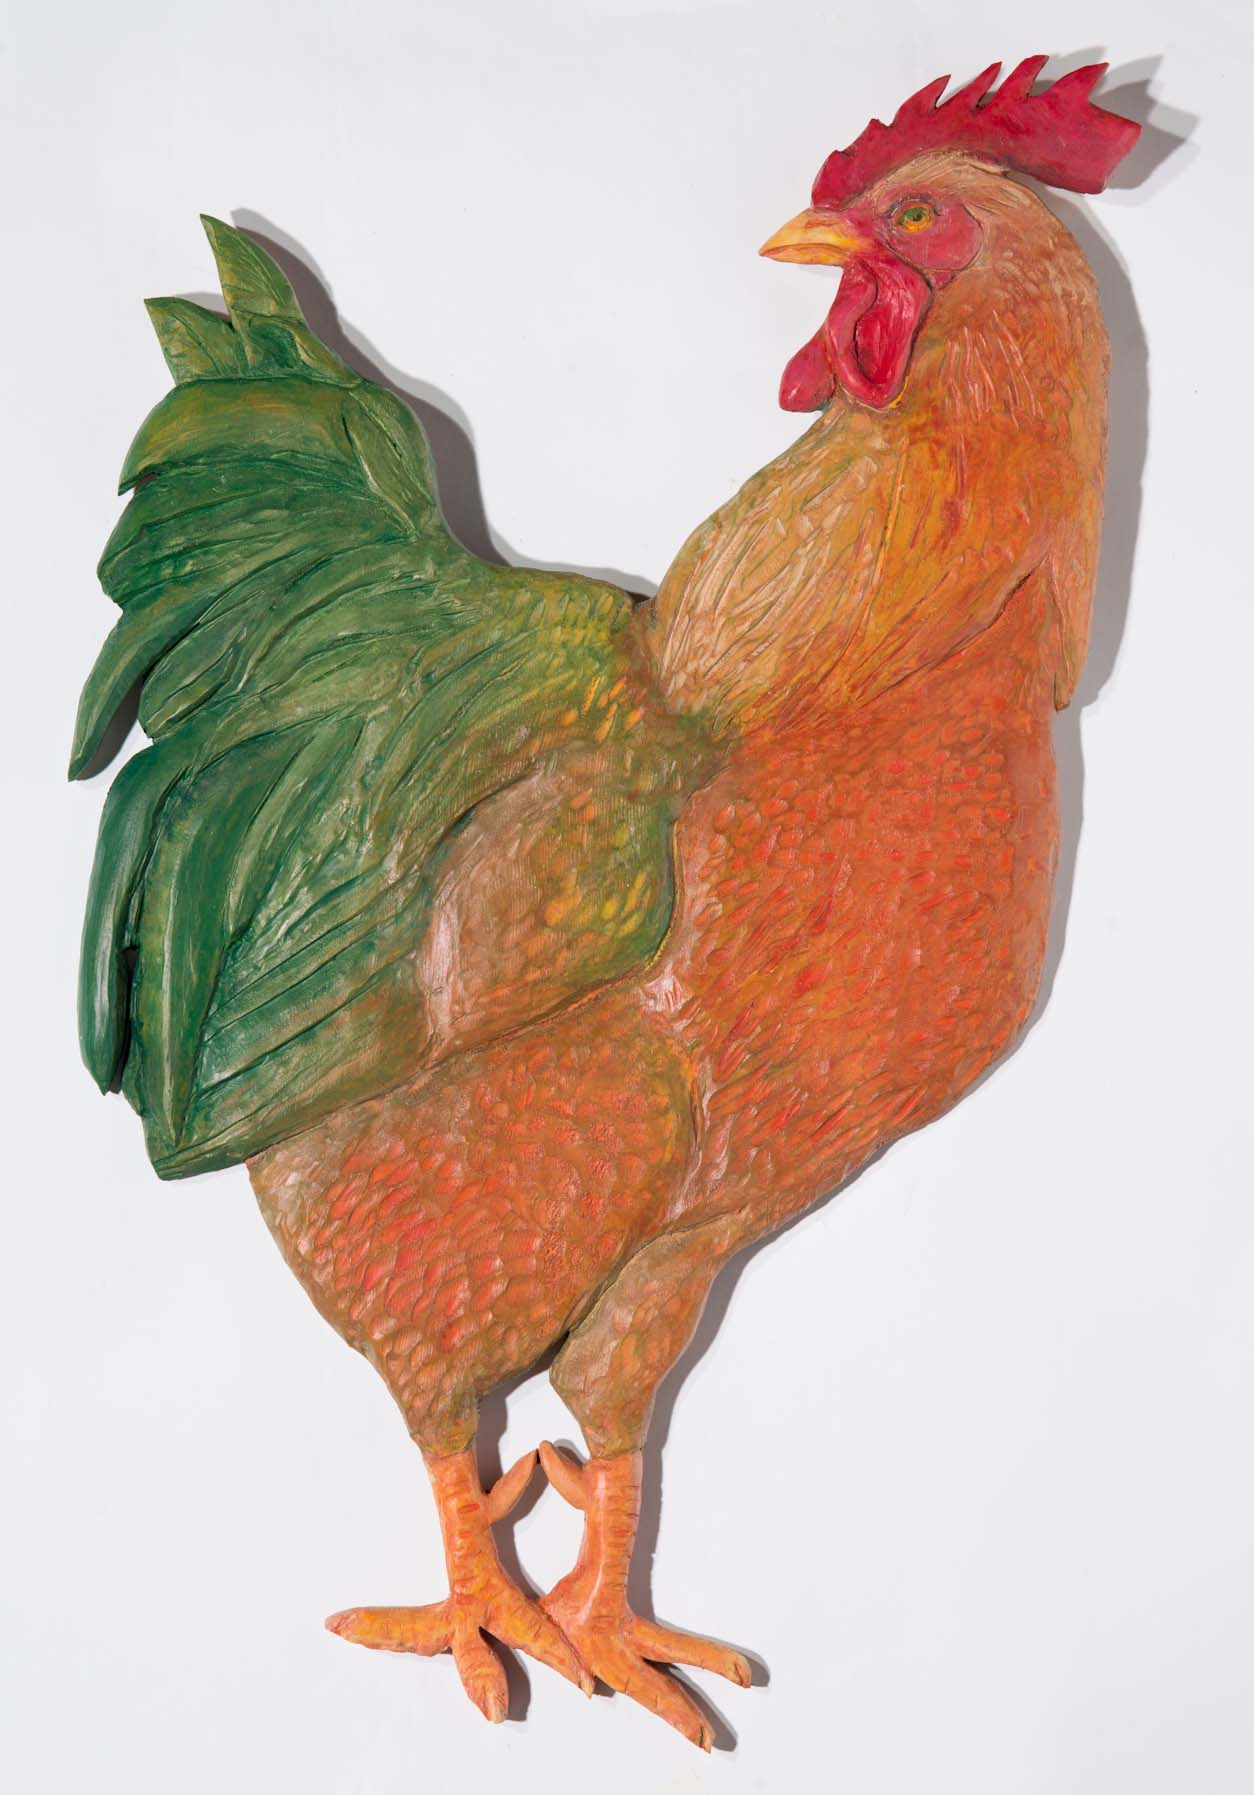 Rooster 7-15_kw04538.jpg